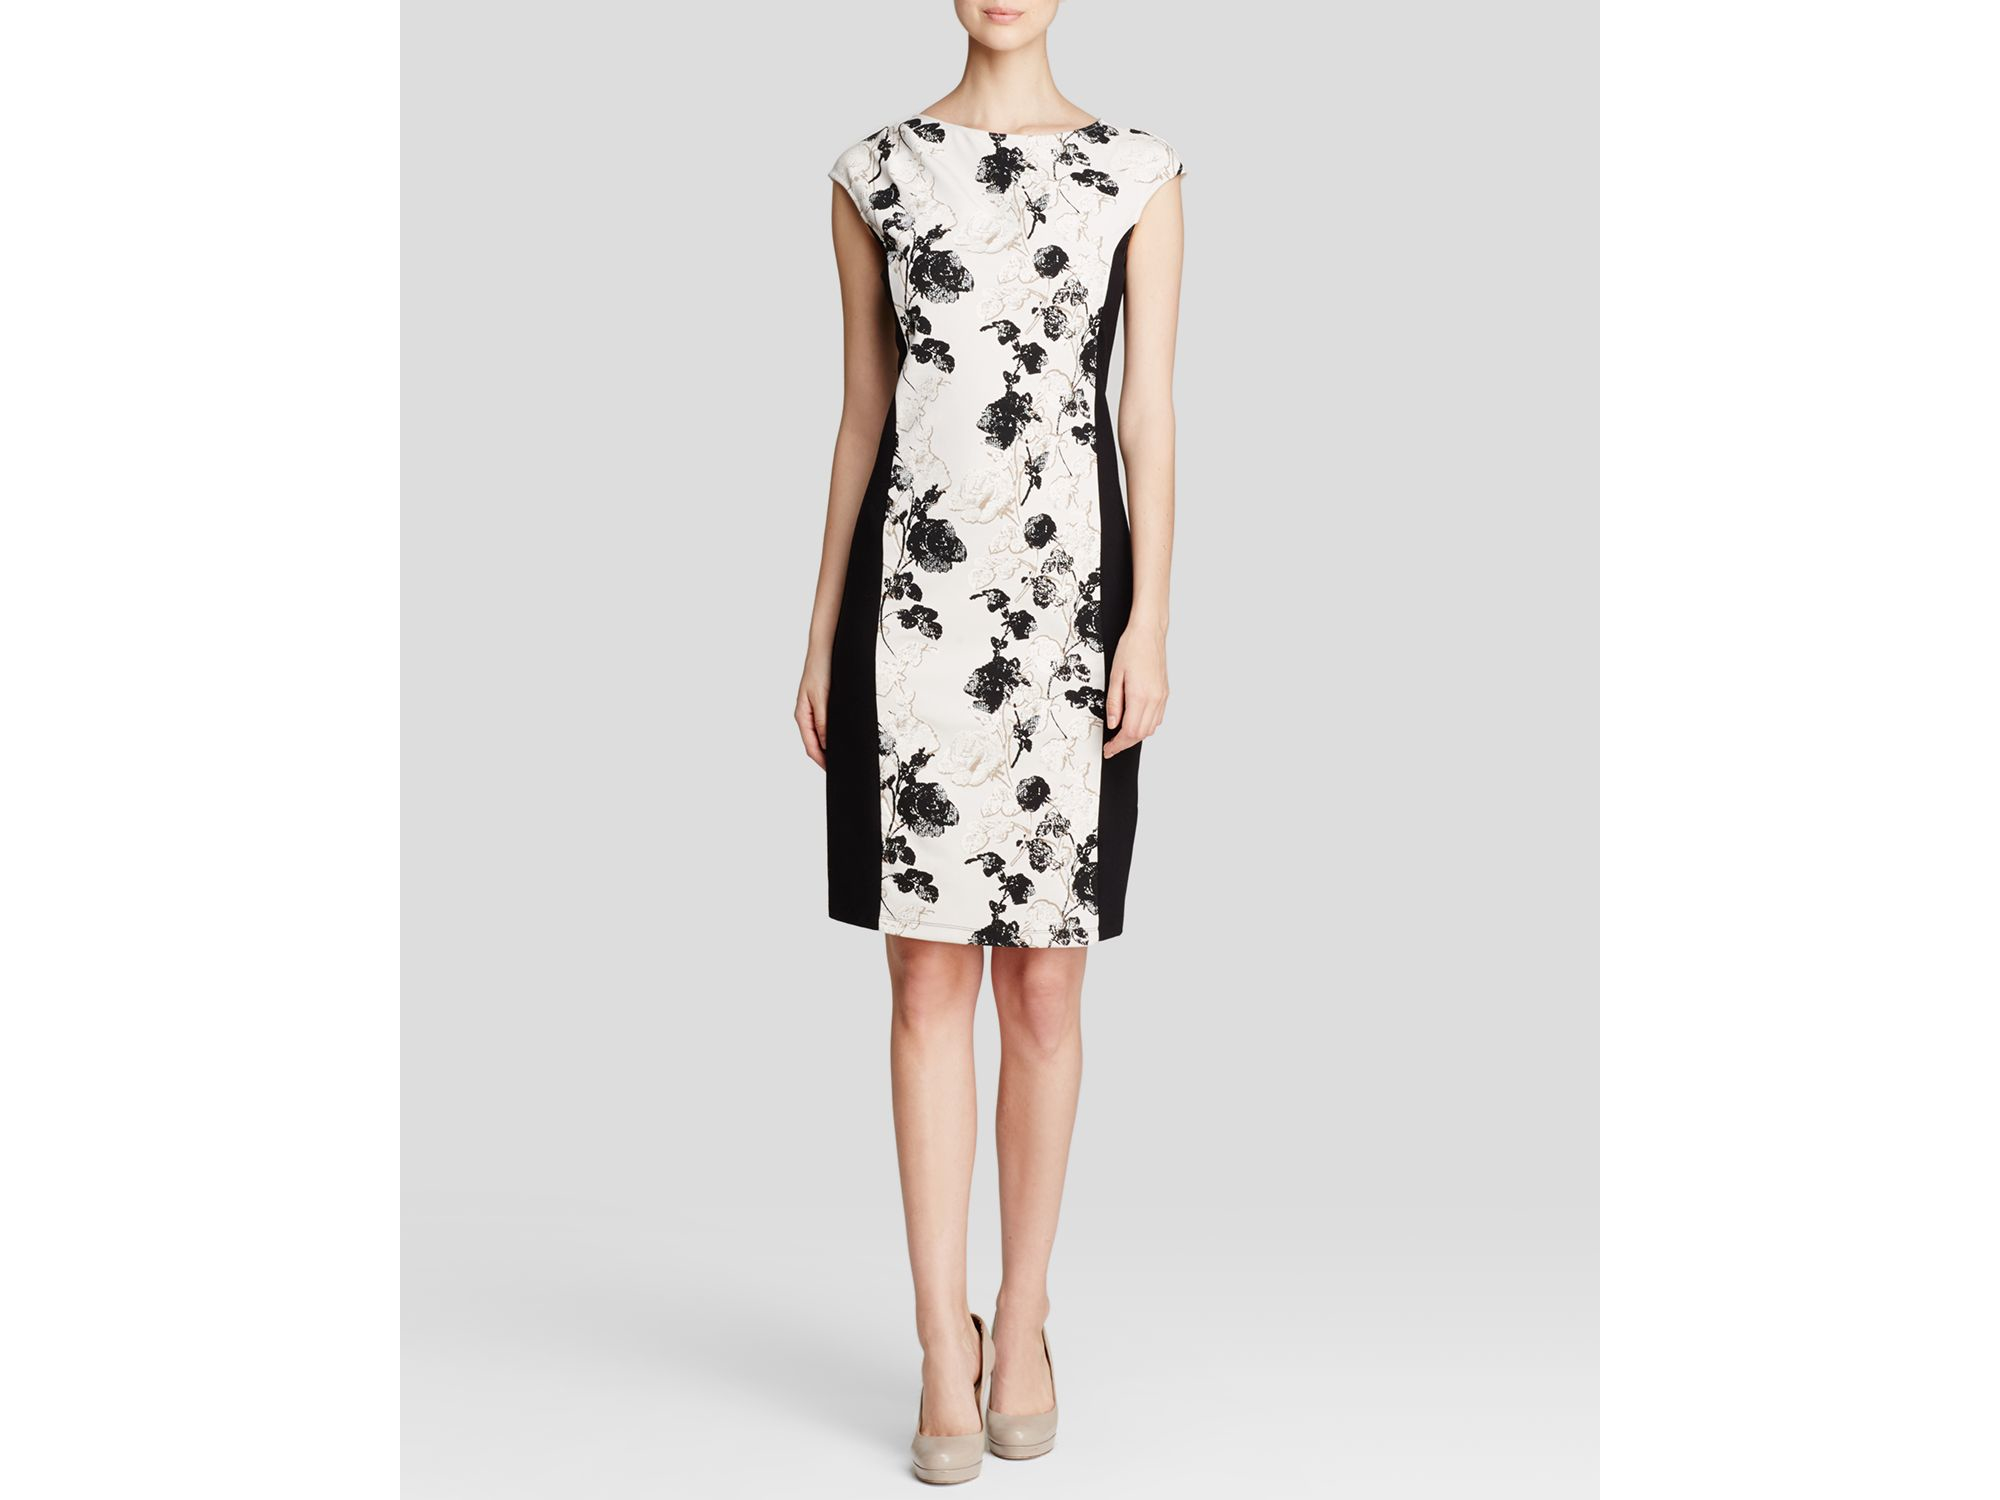 668183666e Weekend by Maxmara Dress - Fionda Stretch Floral Print in Natural - Lyst